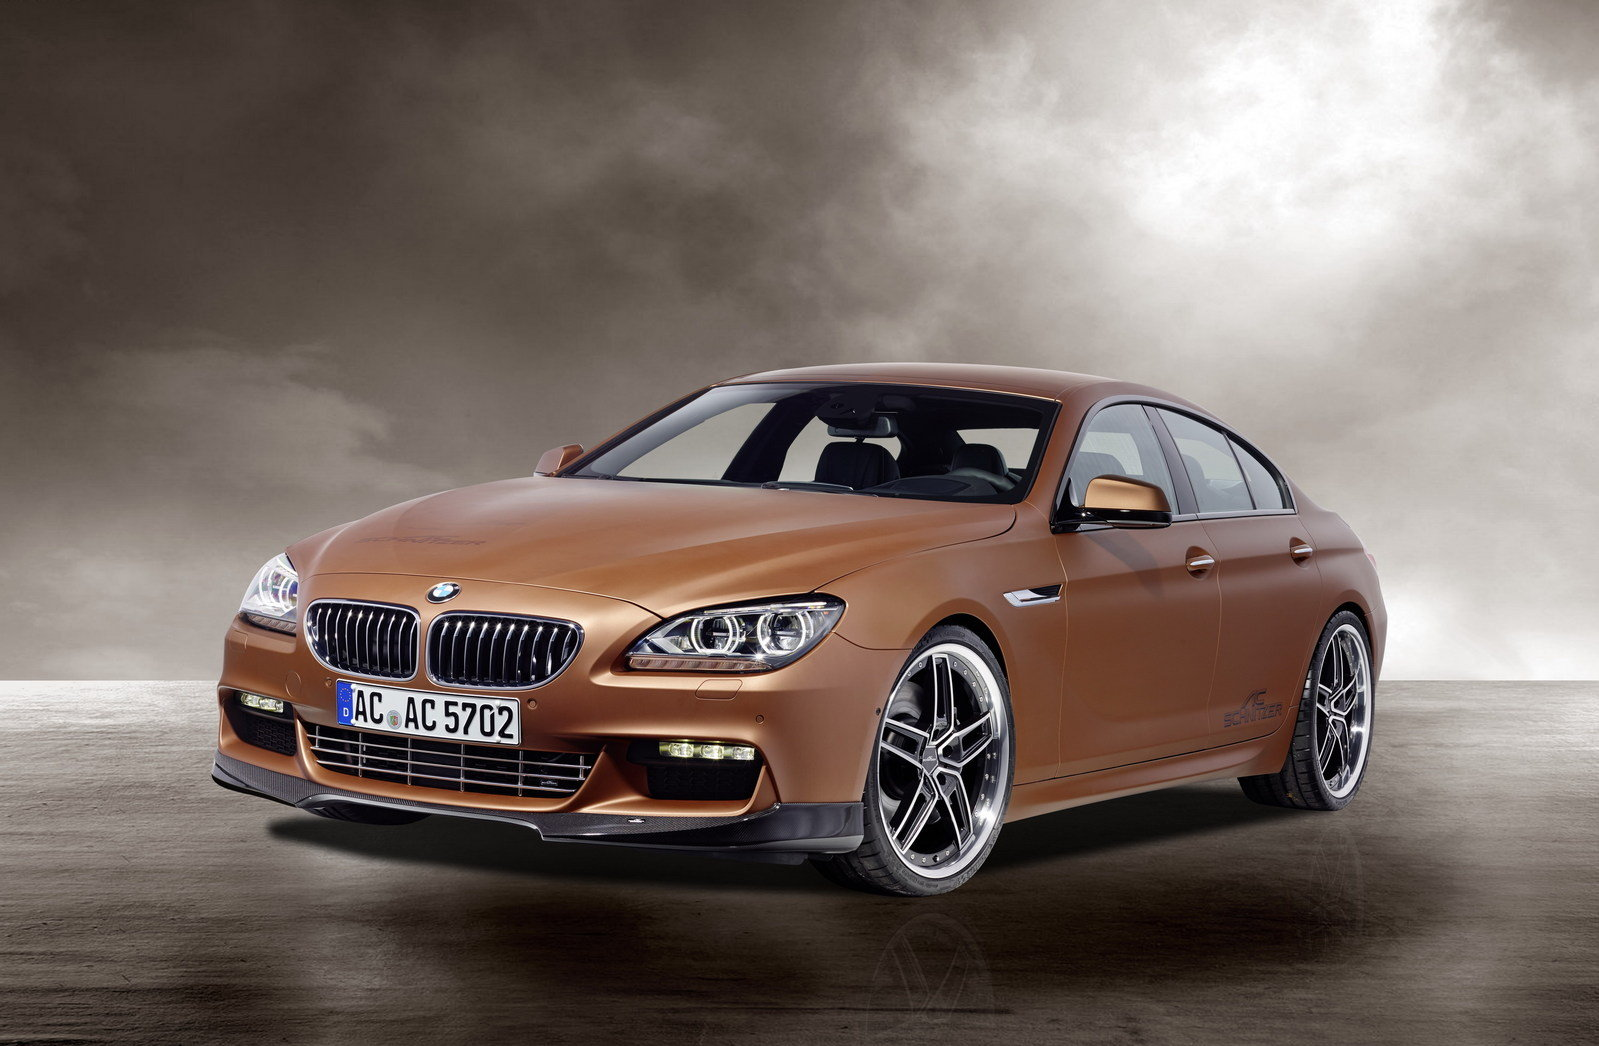 2013 bmw 640d gran coupe by ac schnitzer review top speed. Black Bedroom Furniture Sets. Home Design Ideas